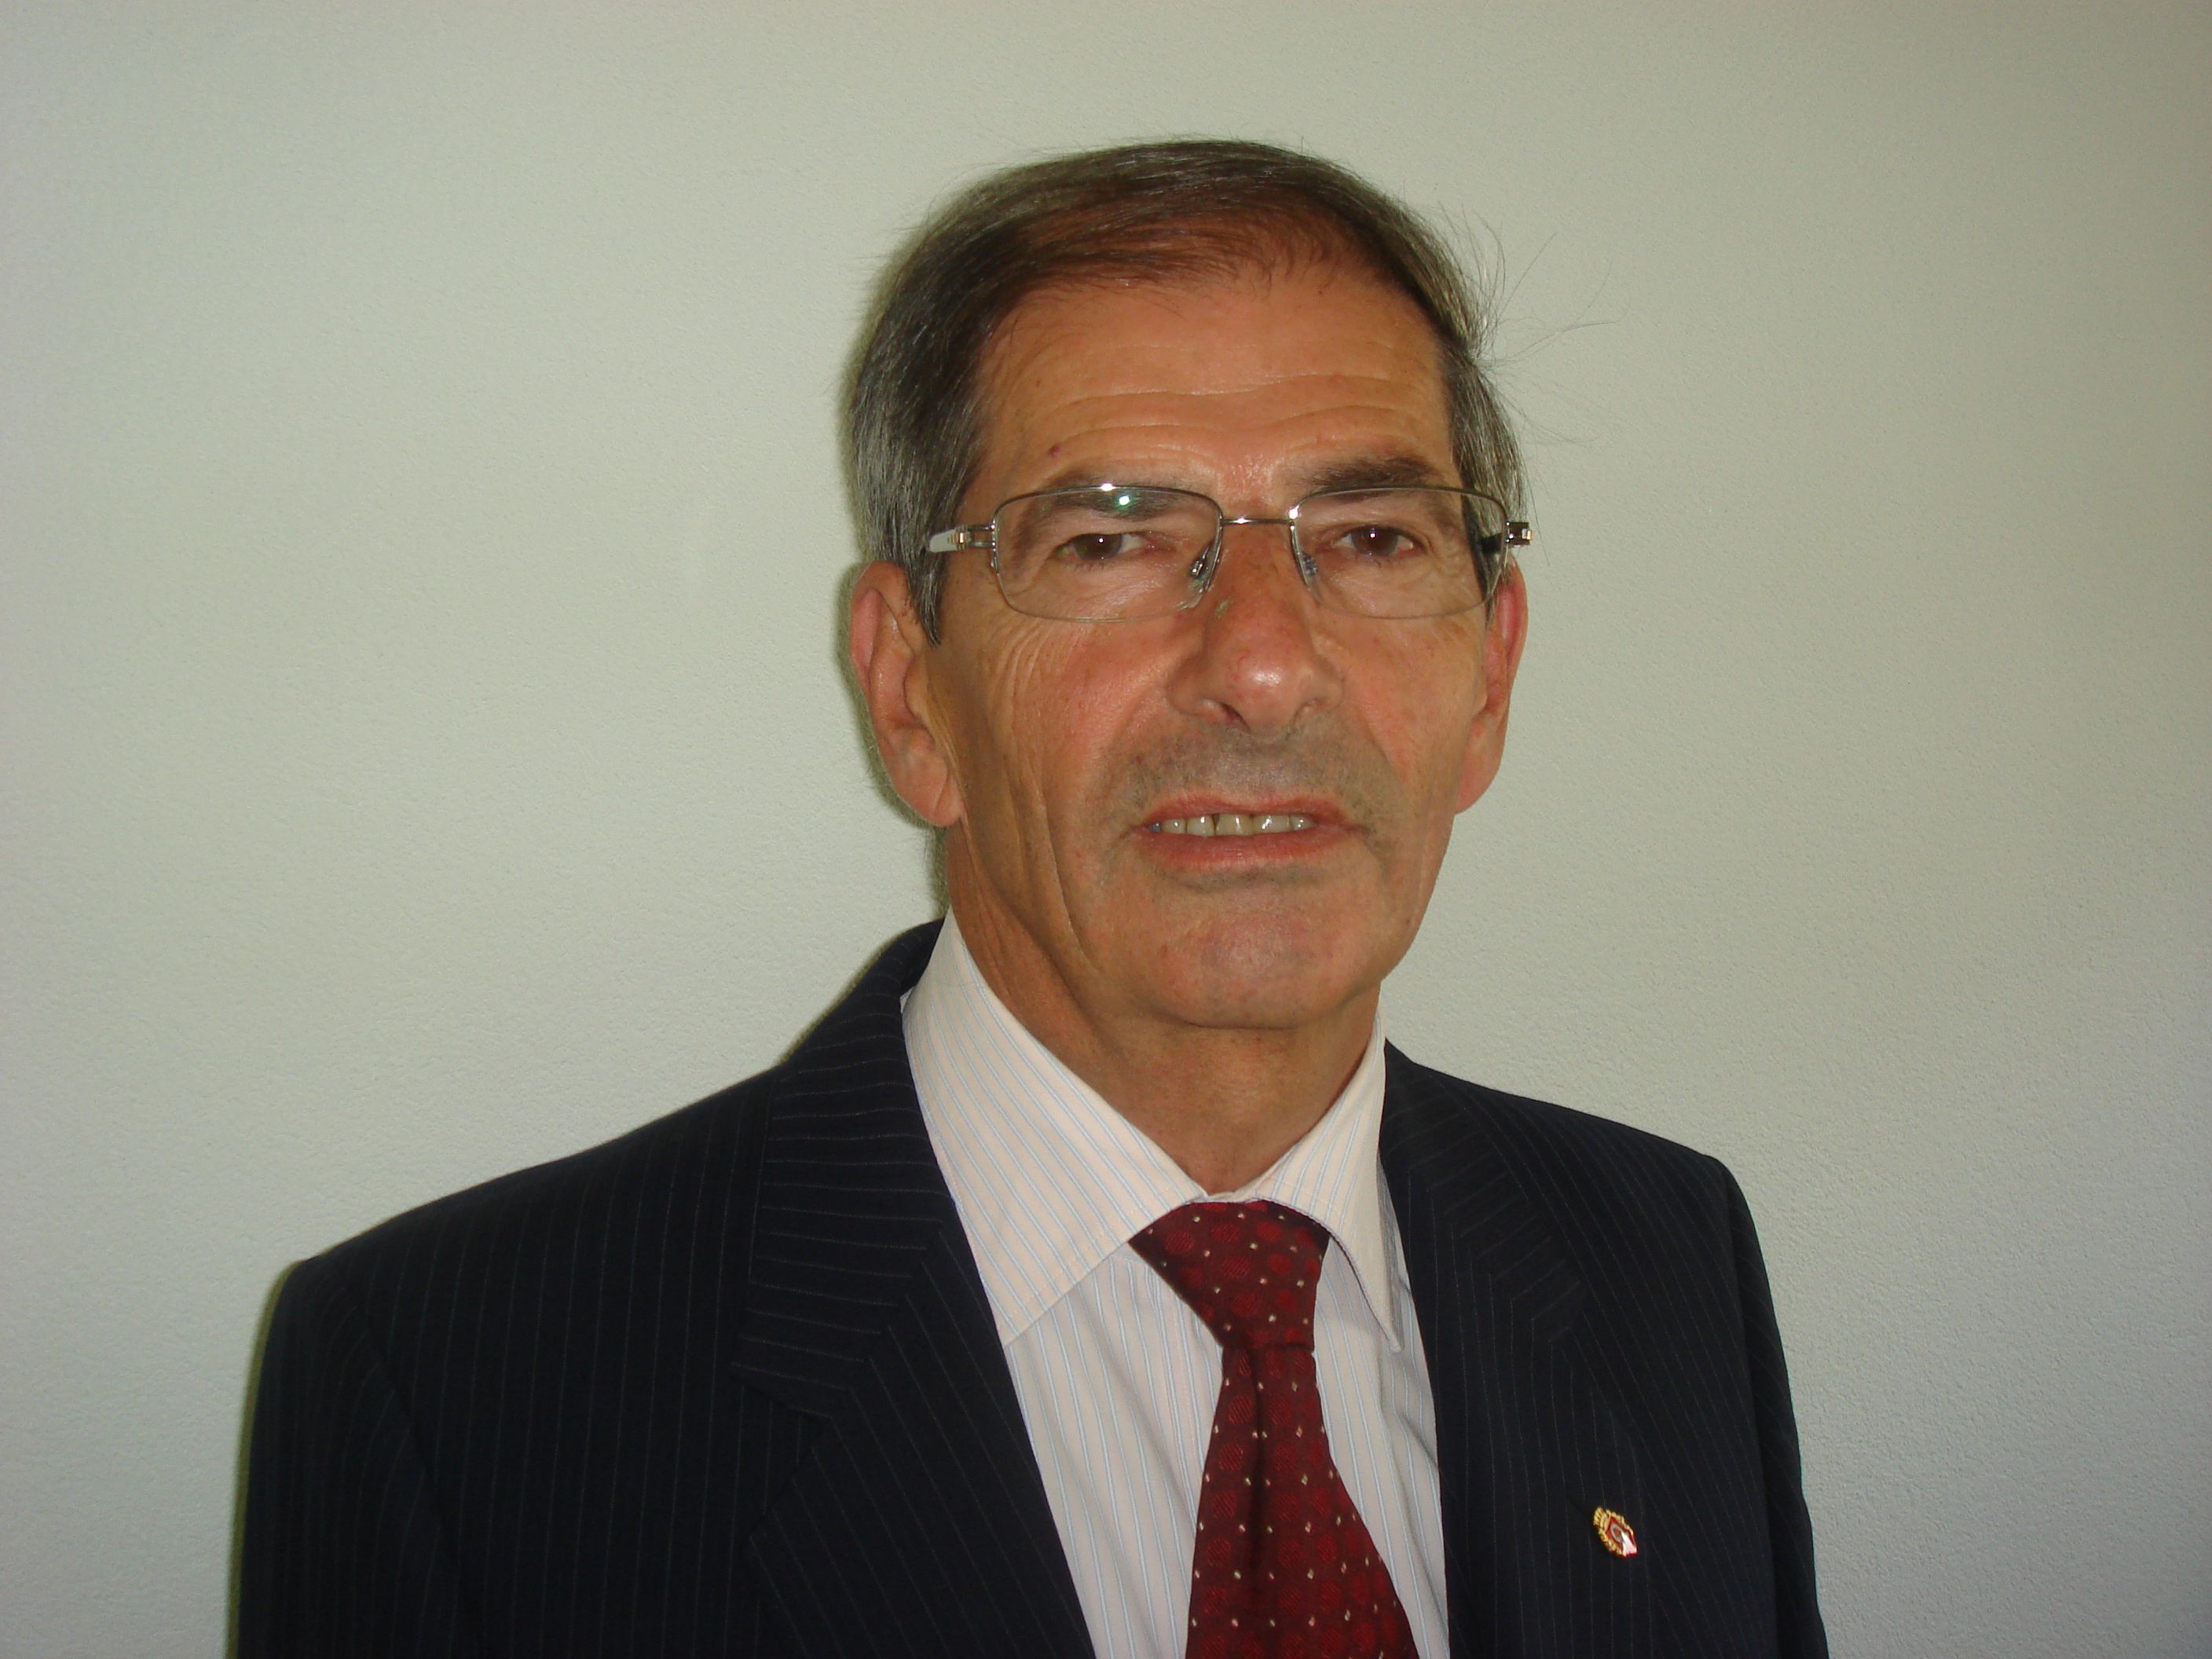 Dr. Paul Fries